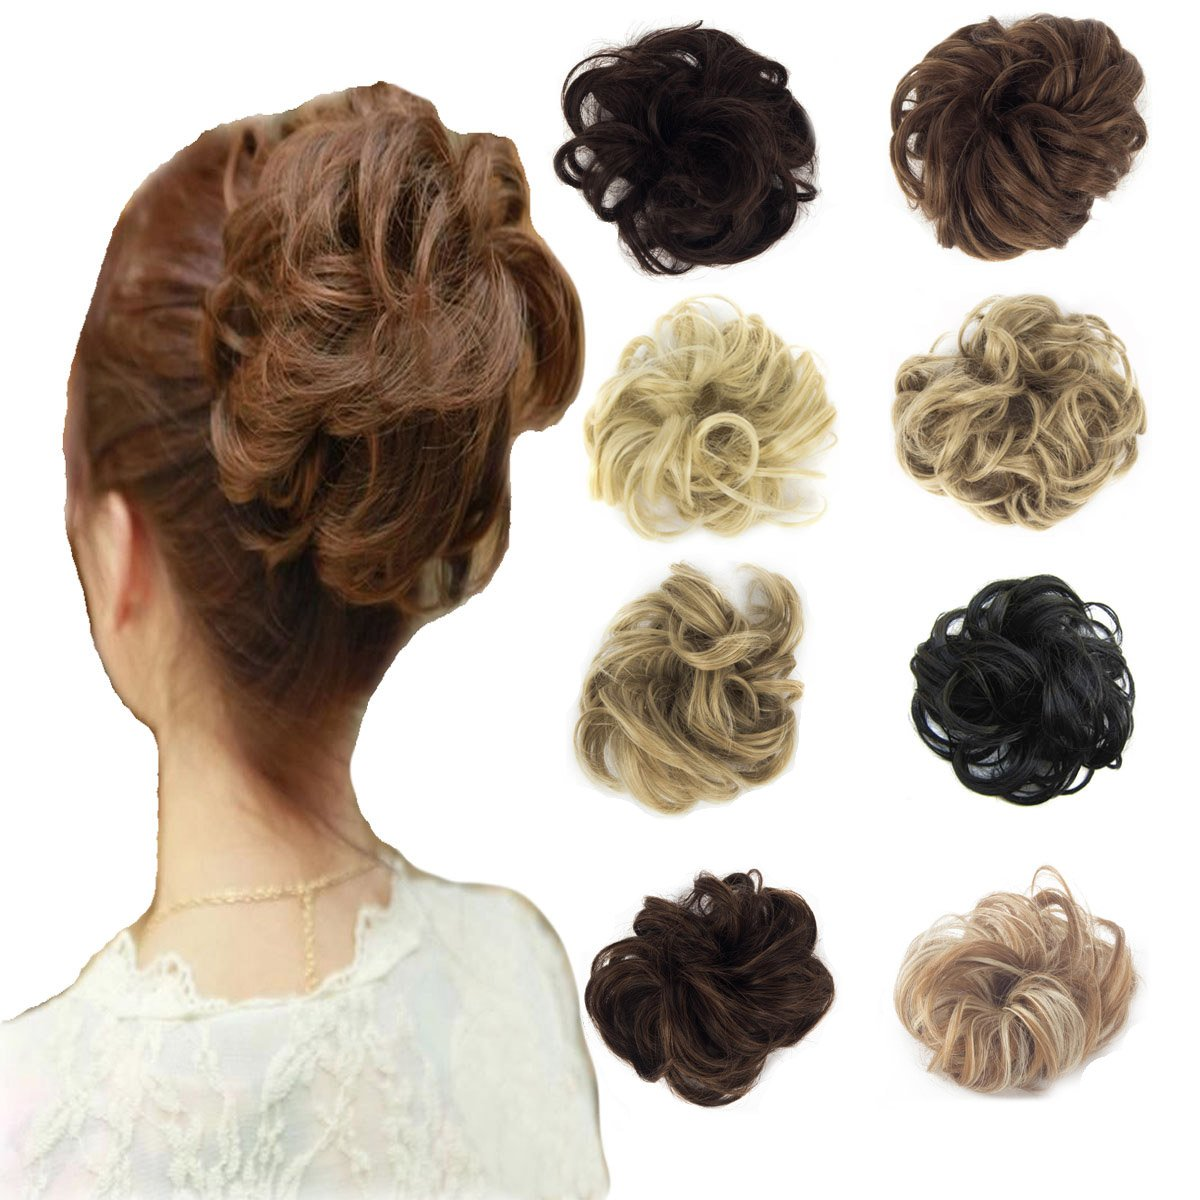 FOCUSSEXY Hair Synthetic Extensions Wavy Hair Bun Extensions Donut Hair Chignons Wig Hairpiece Scrunchy Scrunchie Hair Bun